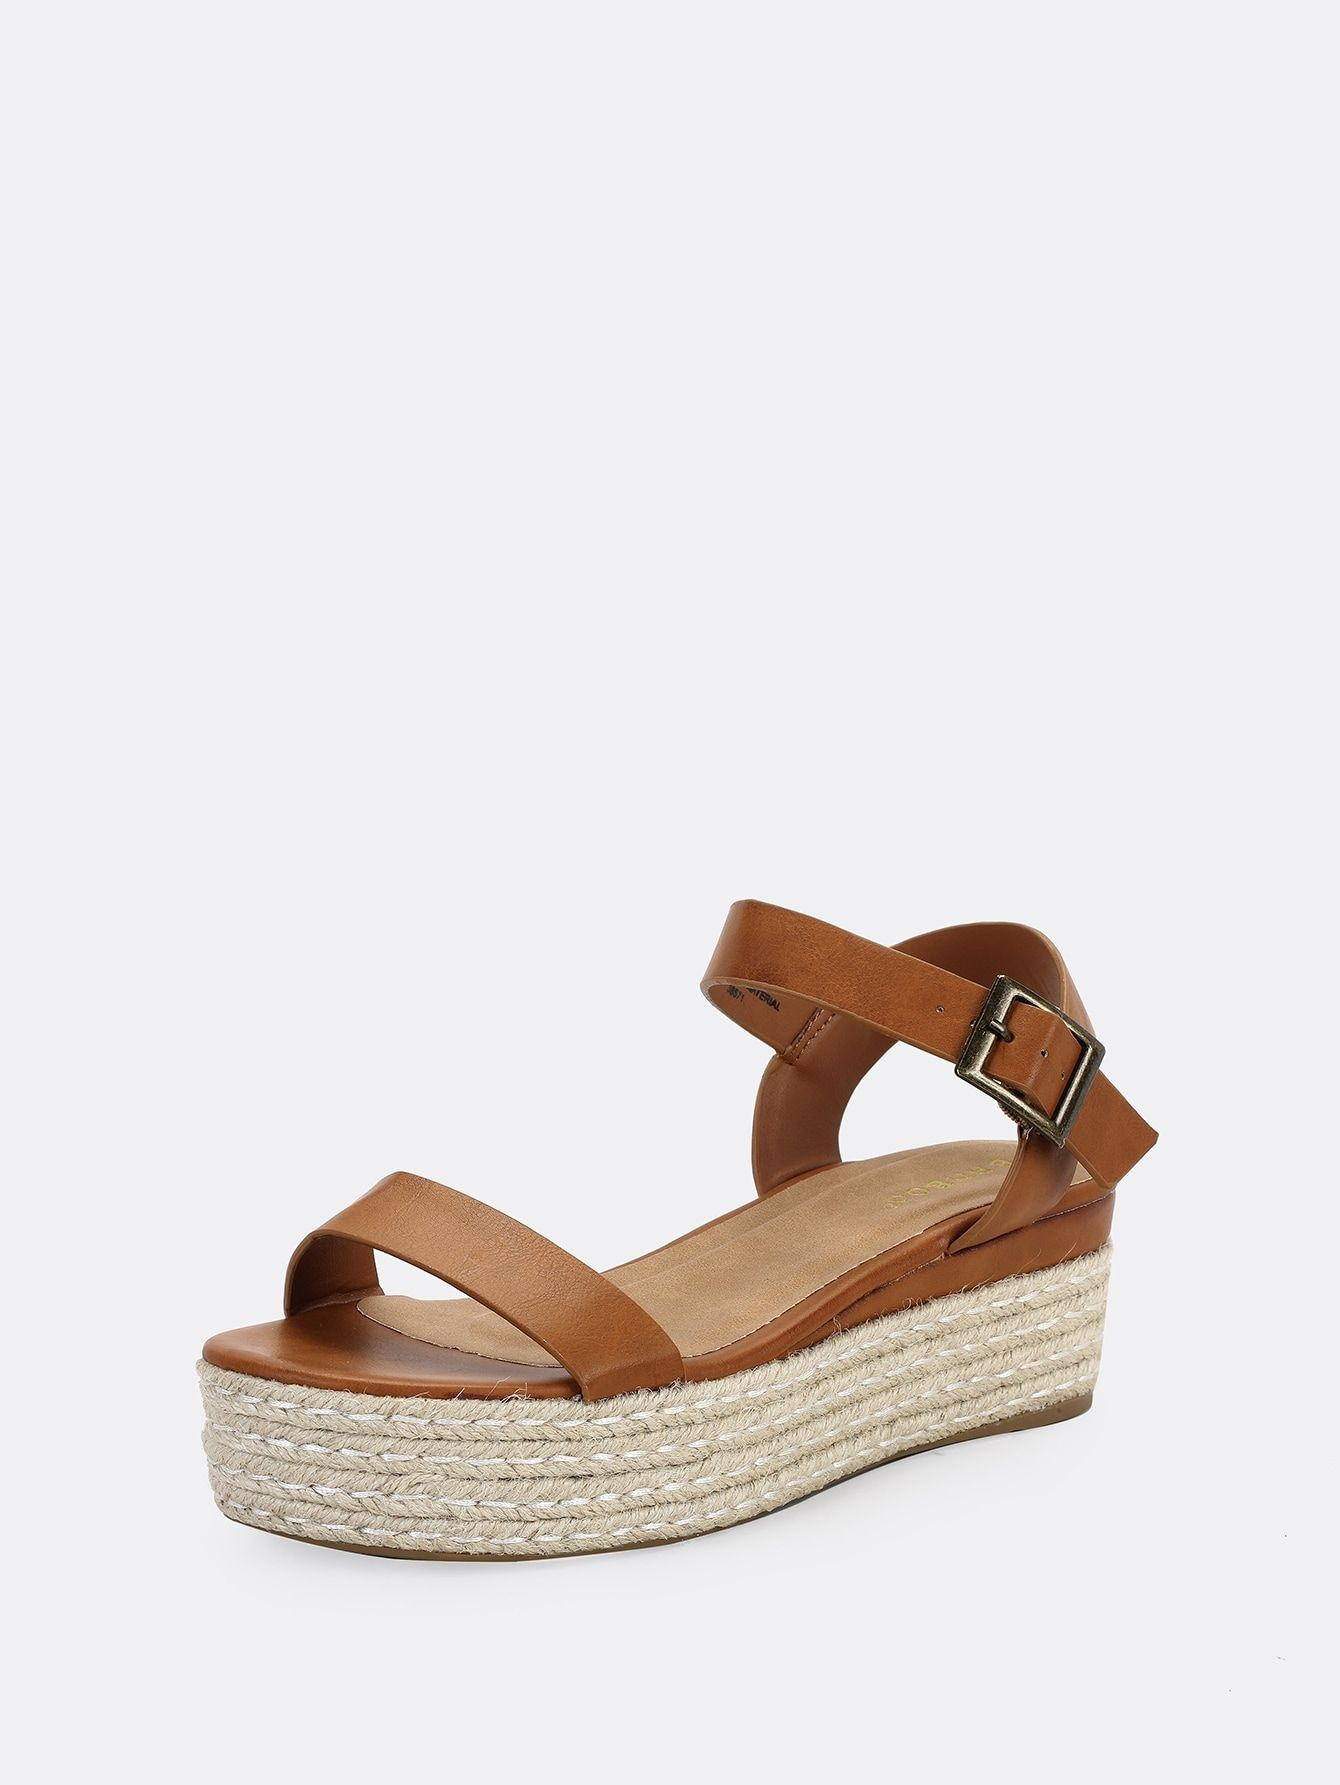 Open Sandals Casual Toe One Band Jute Flatform Brown Trimmed Buckle nyv0wPNm8O